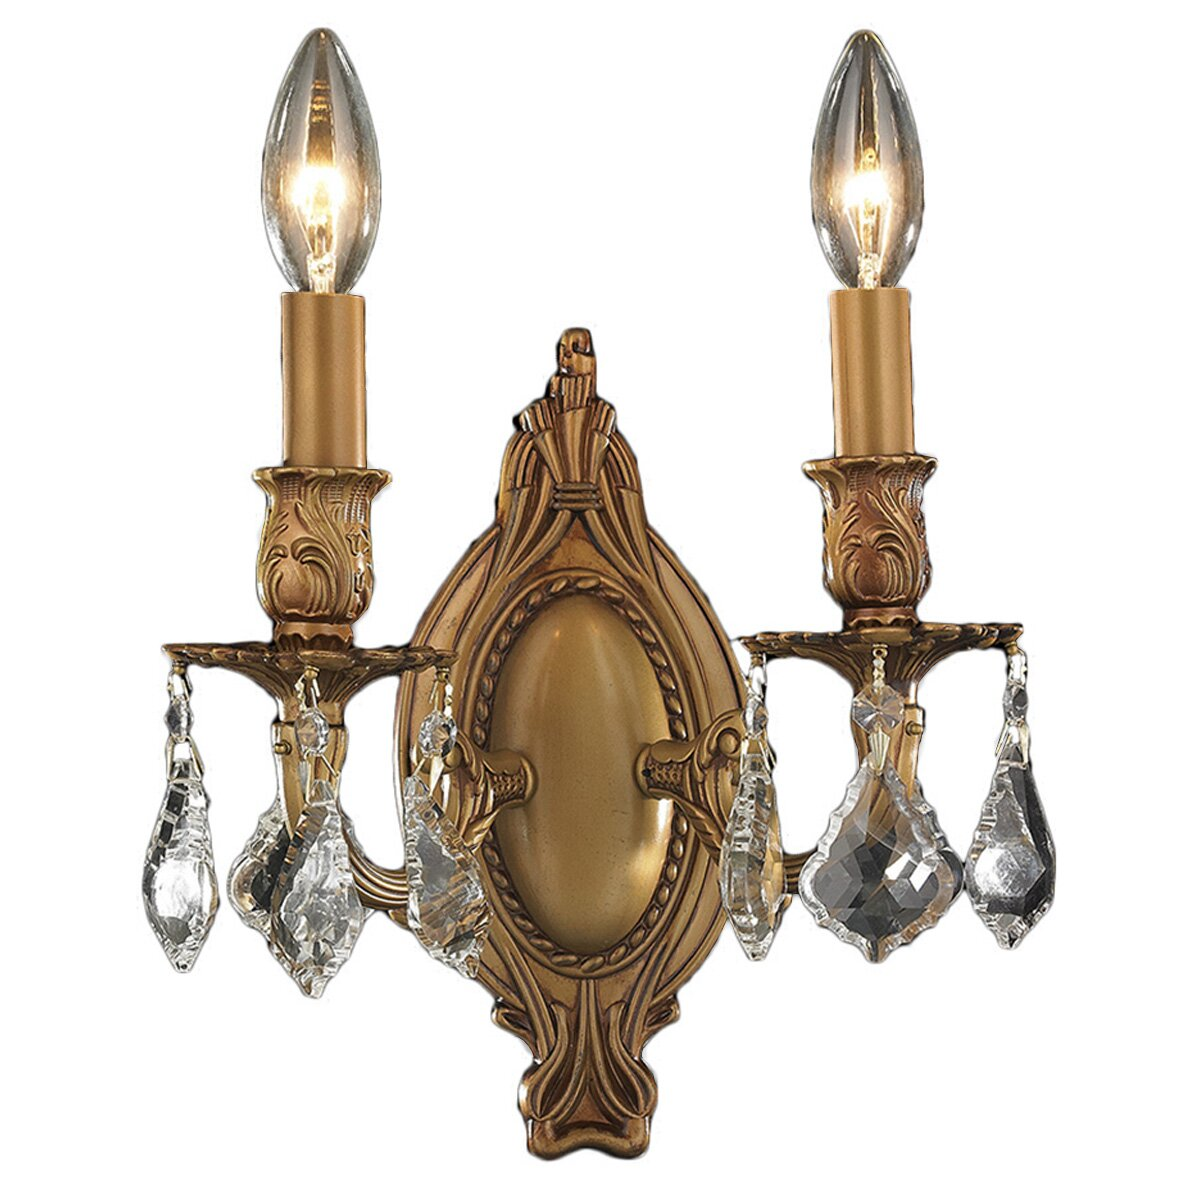 Wall Sconces At Wayfair : Worldwide Lighting Windsor 2 Light Wall Sconce Wayfair